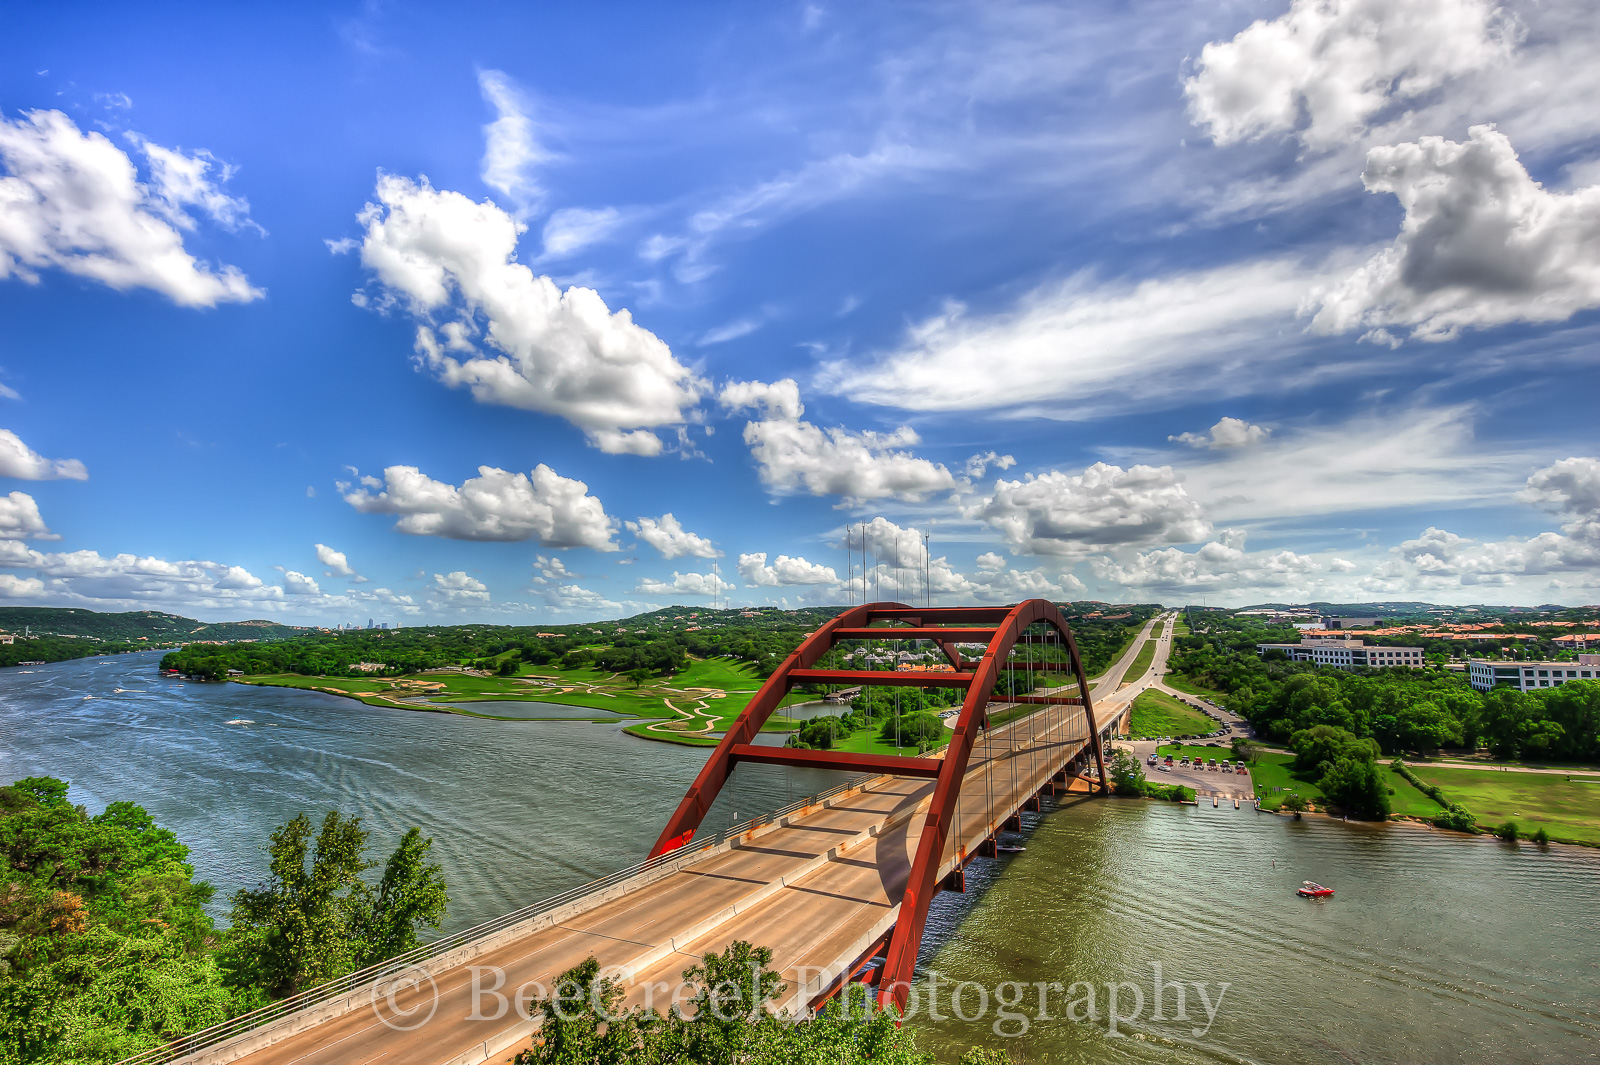 360 bridge, Austin, Austin skyline pictures, Lake Austin, Pennybacker bridge, Pennybacker bridge Austin Texas, austin cityscapes, austin skyline, austin skyline images, austin skyline photography, aus, photo